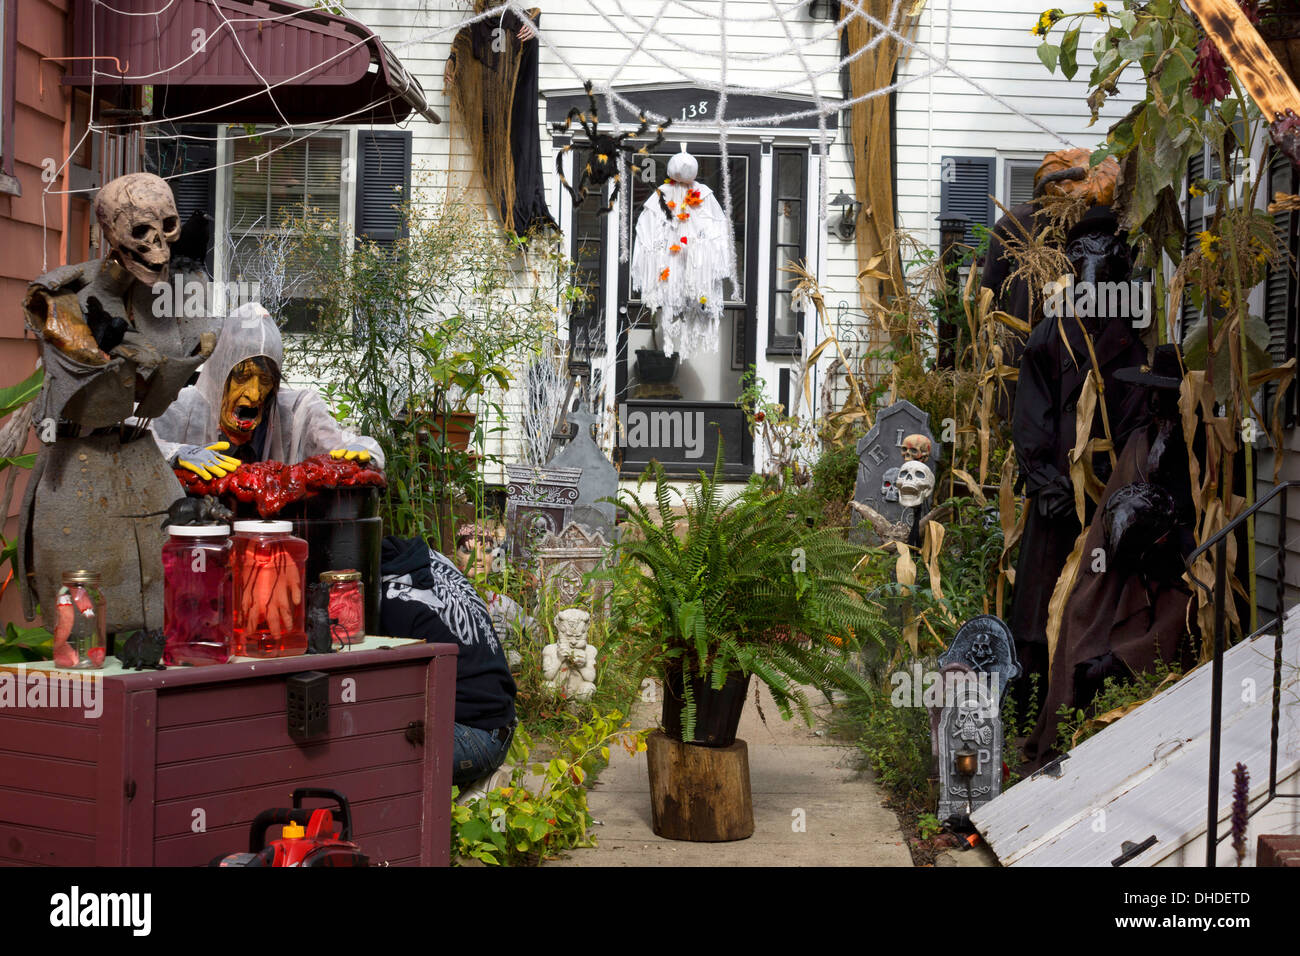 halloween decorations in the front garden of a house in salem stock